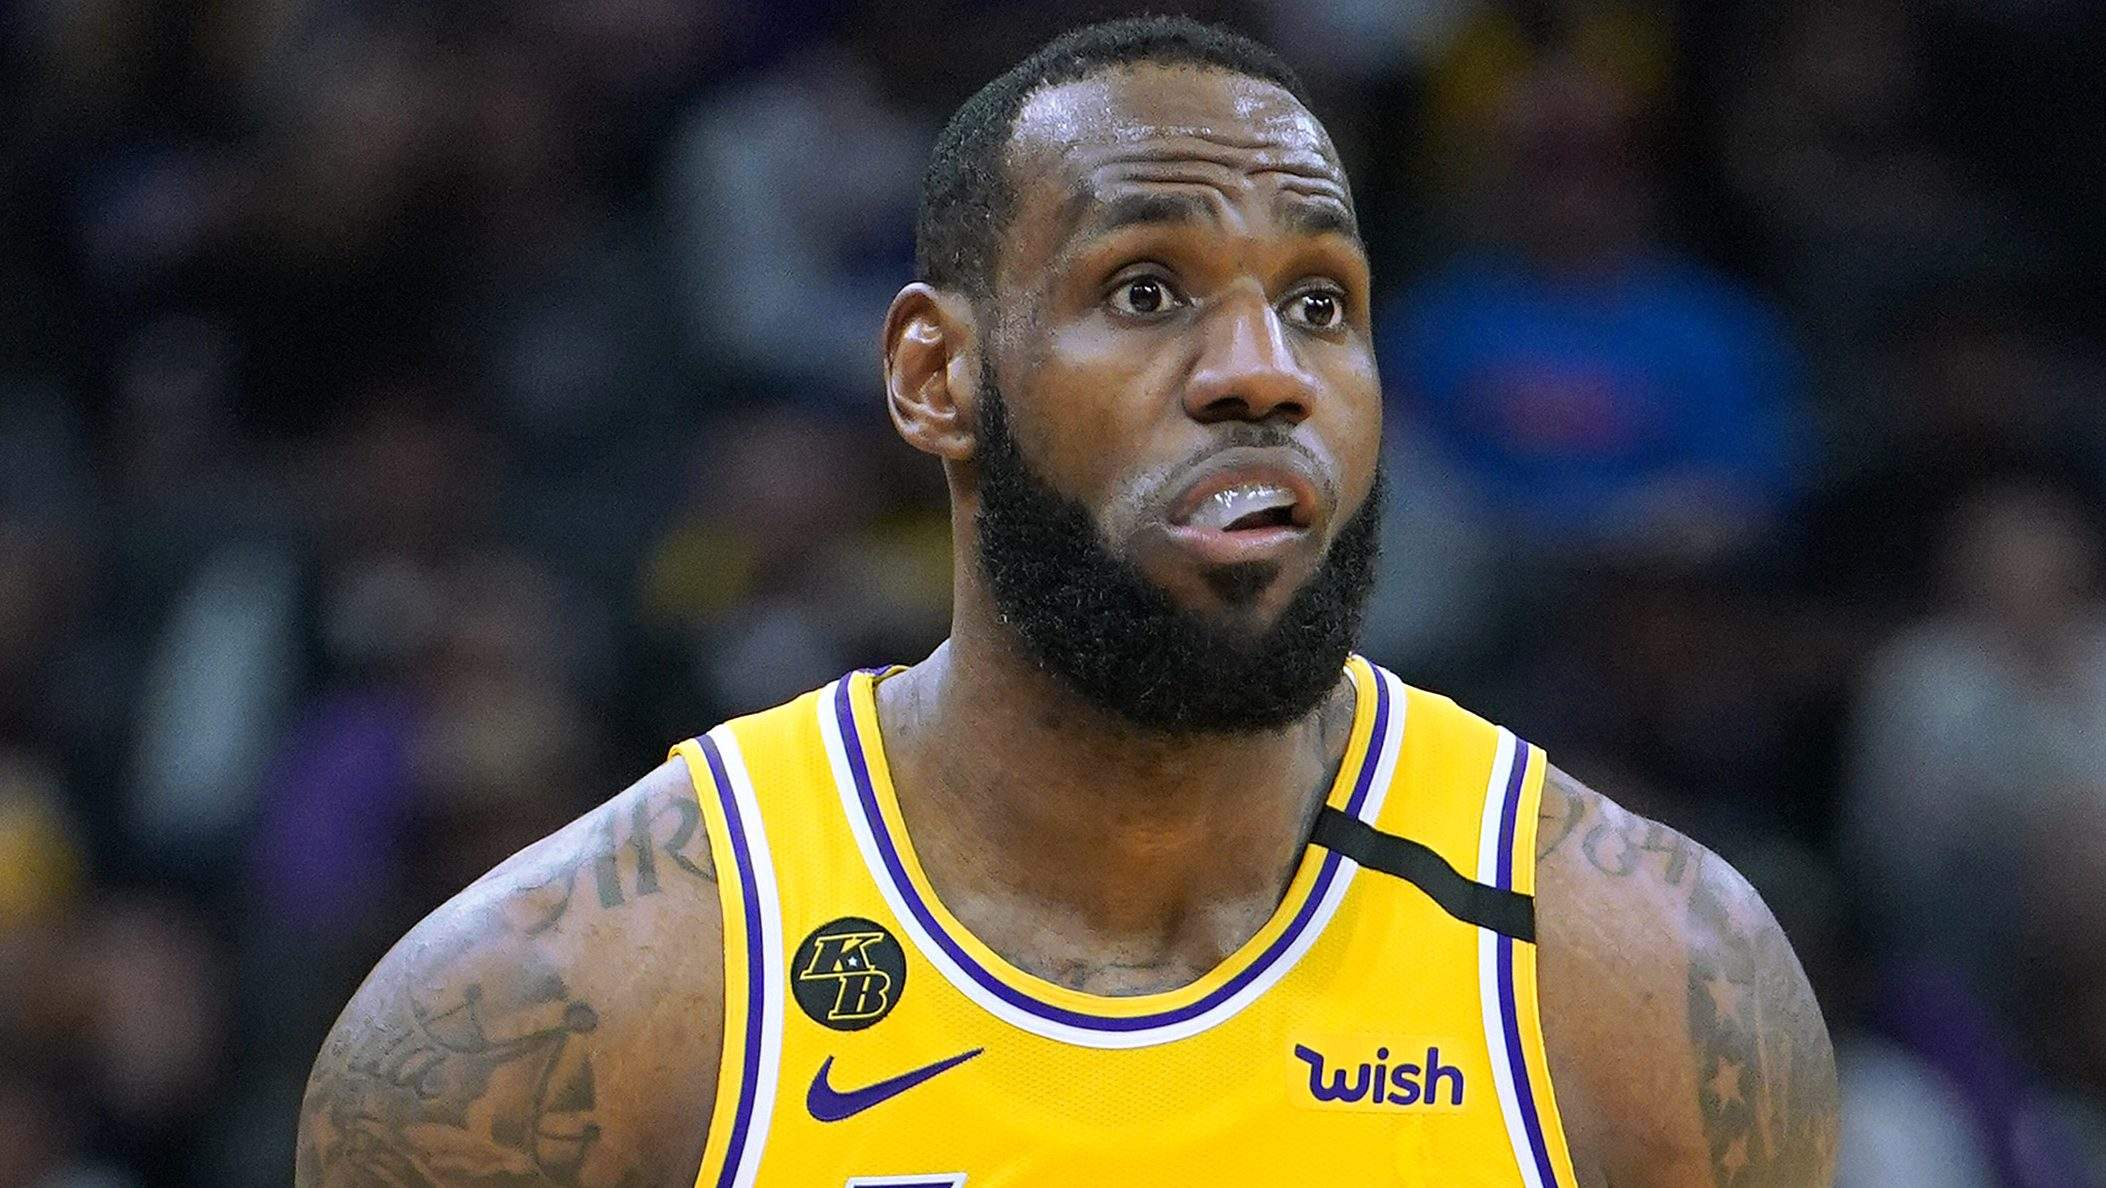 LA Lakers vs Nuggets Results LeBron James and Anthony Davis Performs Amazingly in Nail-biting Overtime Game